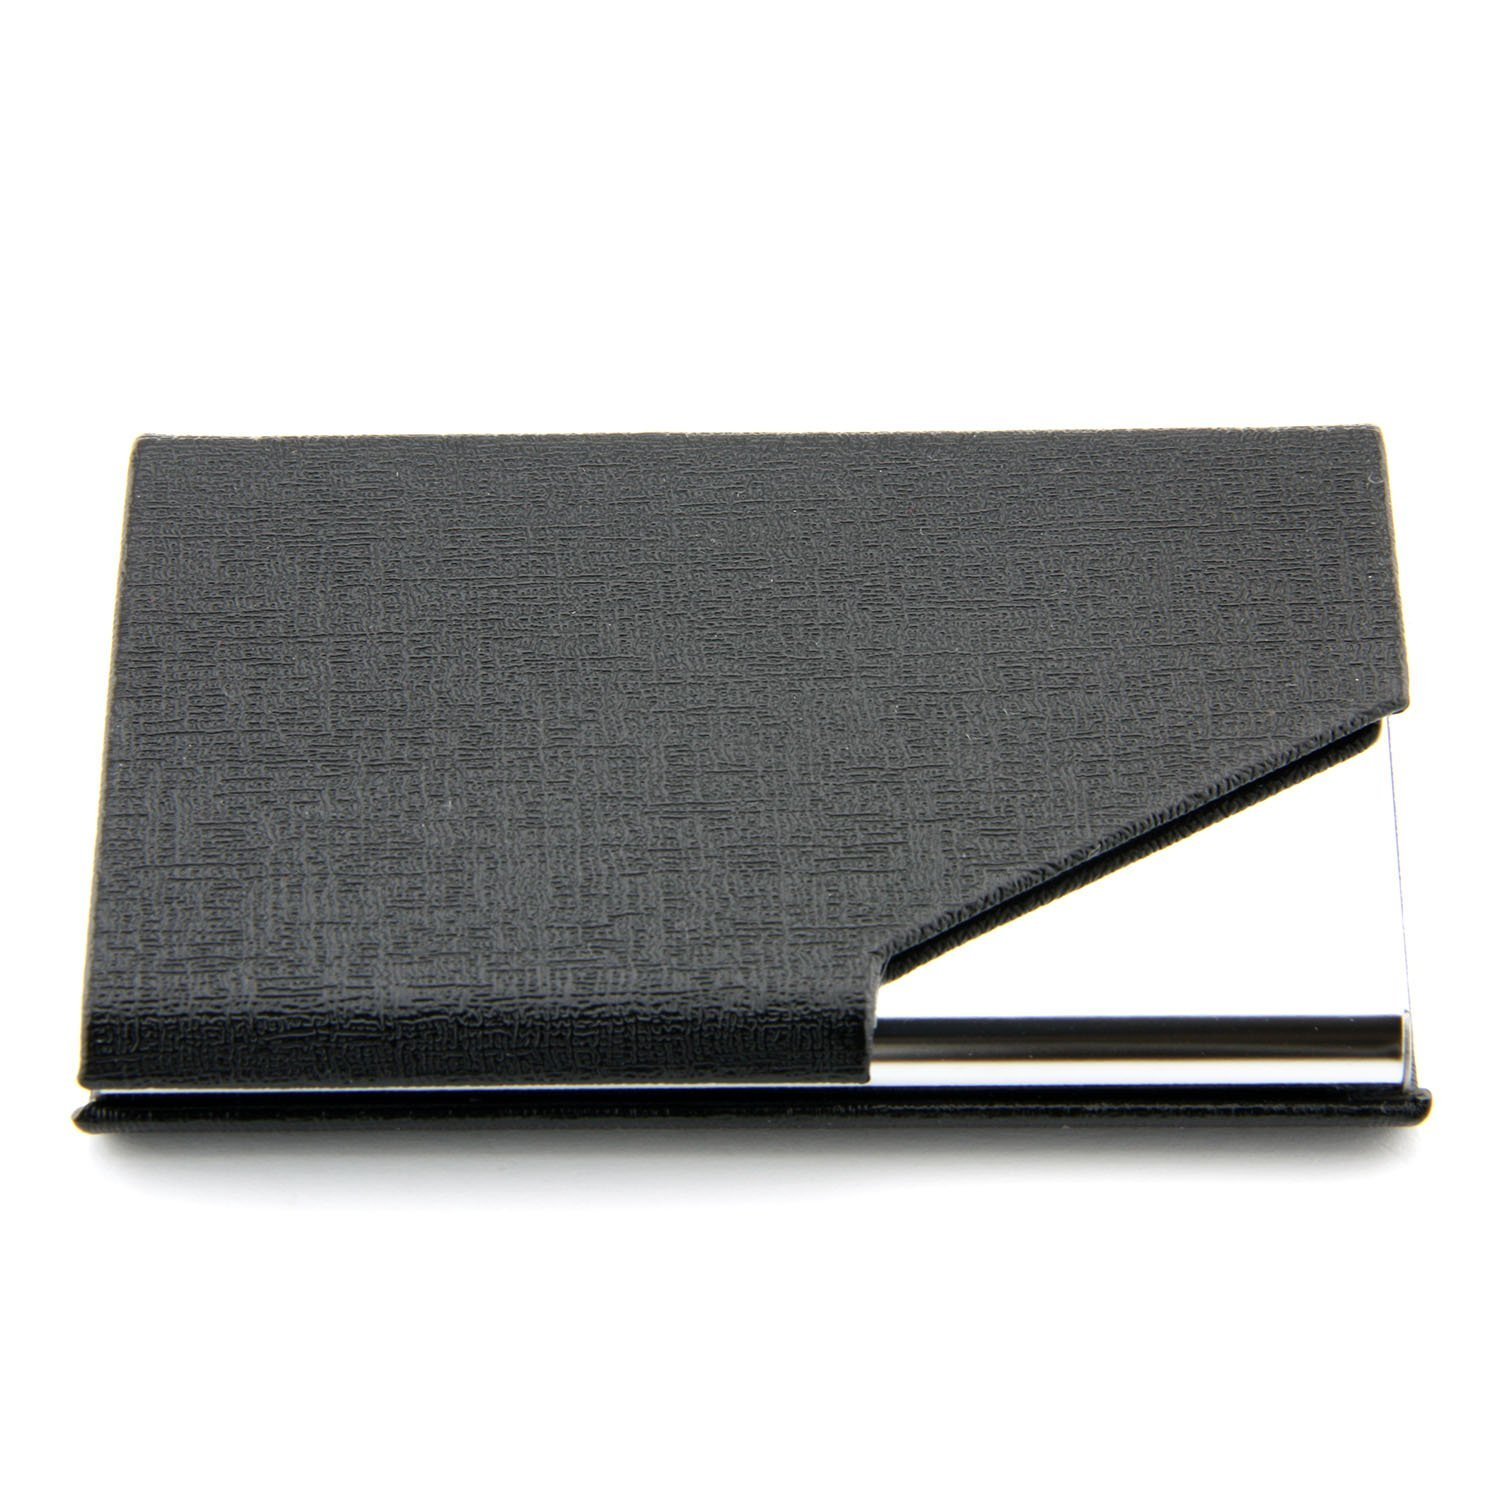 SOSW-PU Leather Business Name Card Holder Credit Card ID Organizer With Magnetic Shut For Office Supplies(Black)